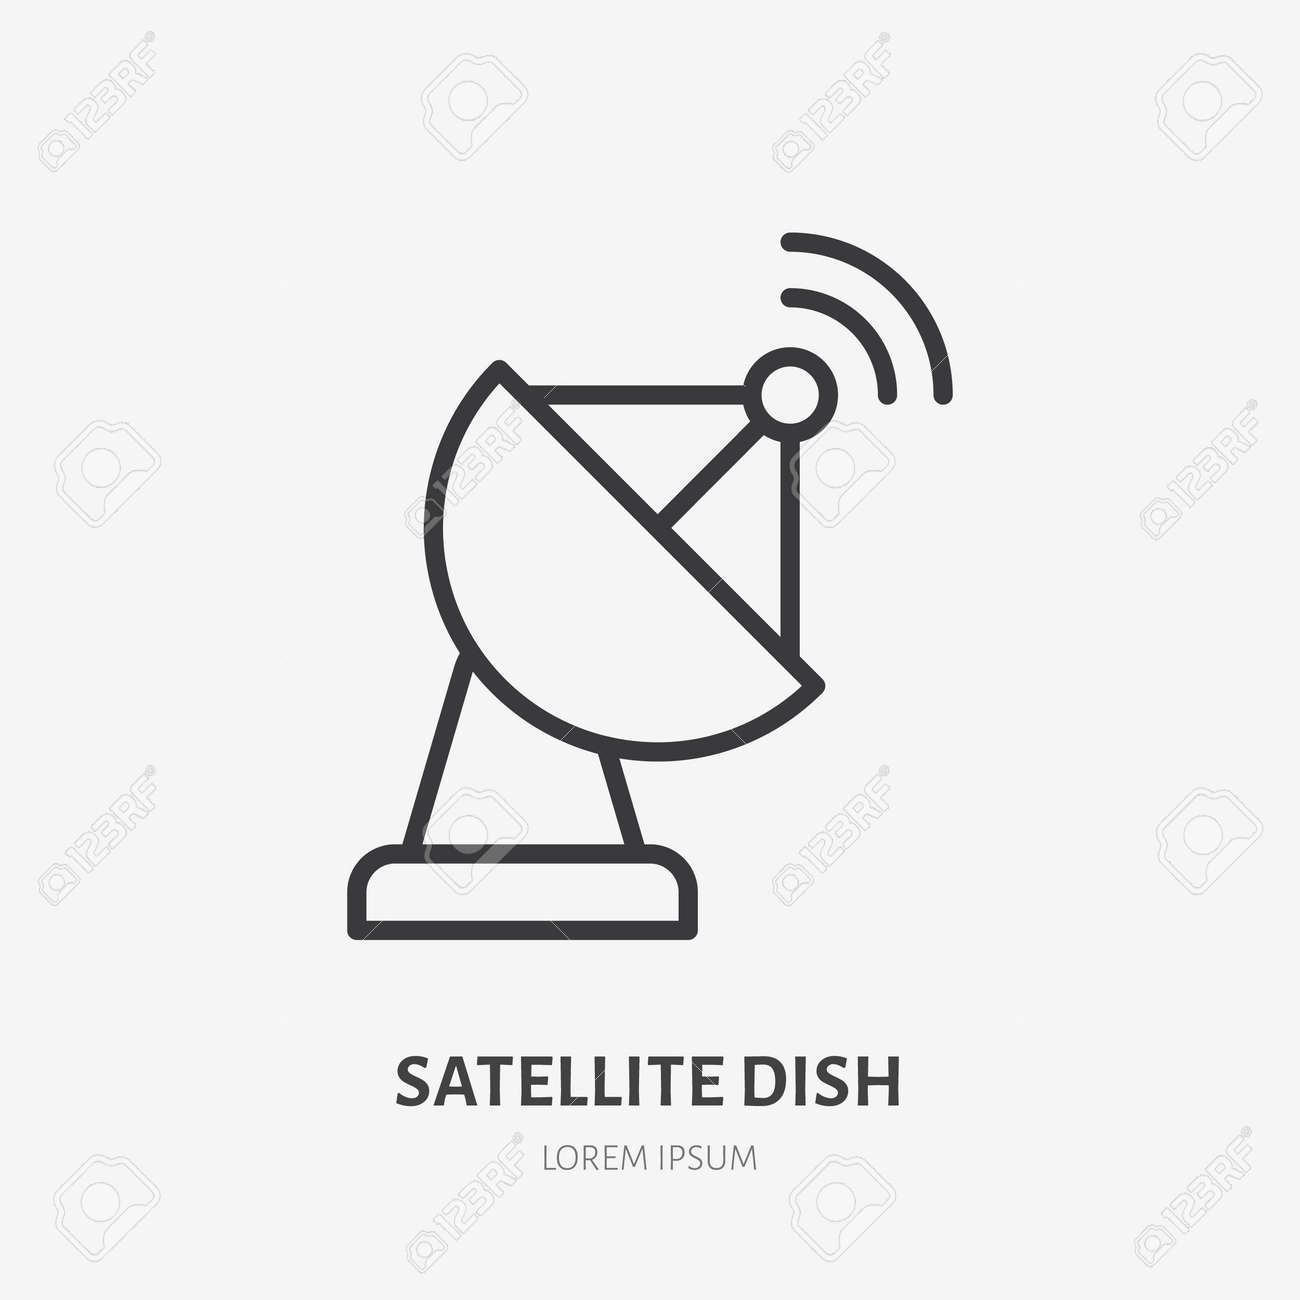 Satellite dish flat line icon. Vector outline illustration of communication equipment. Black color thin linear sign for telecommunication wireless transmitter. - 162491638